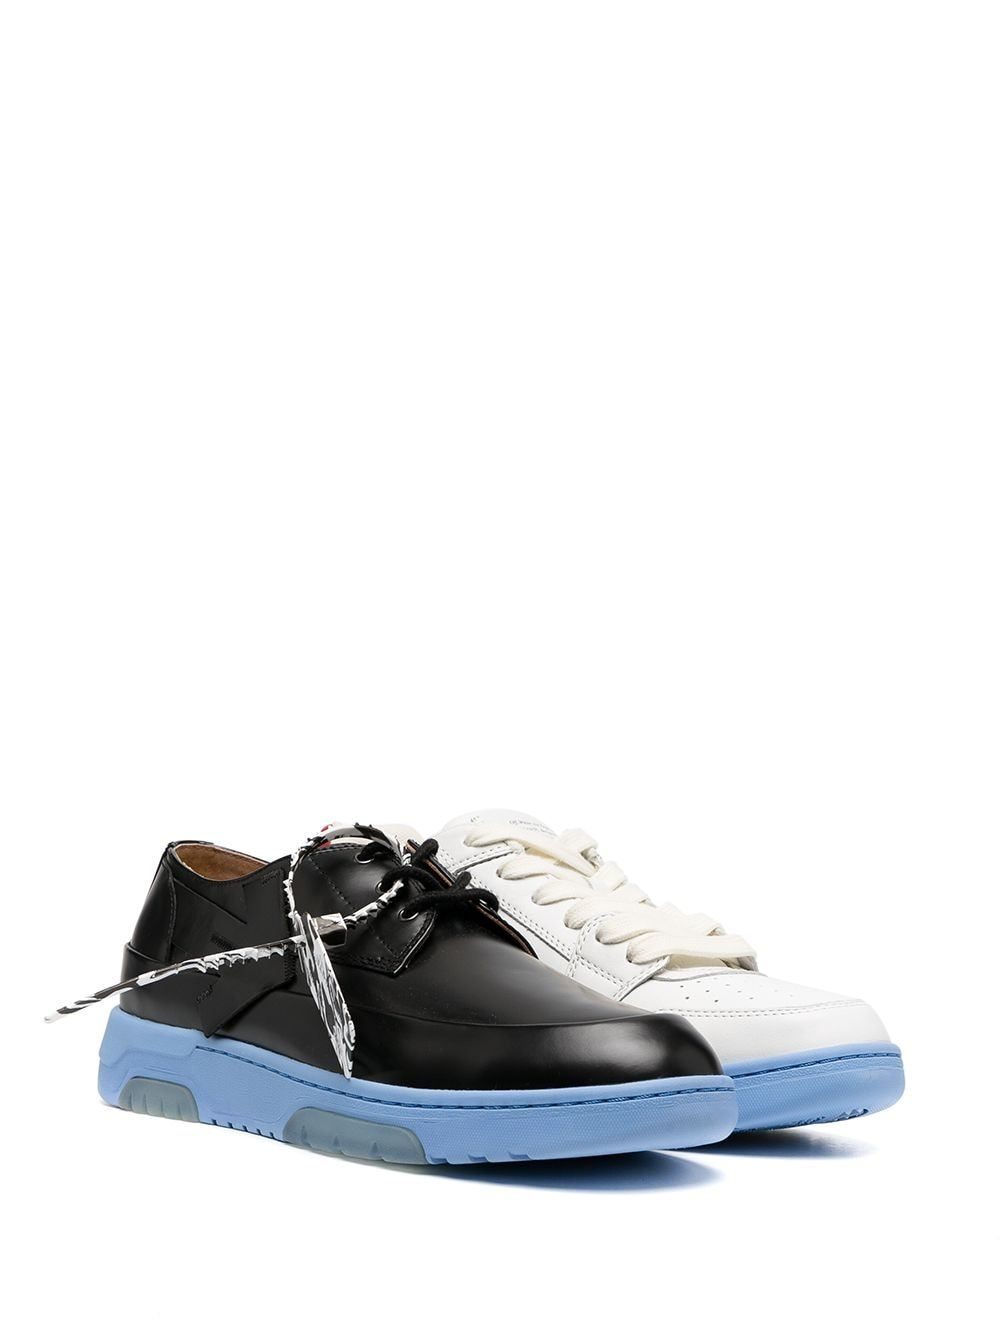 OFF-WHITE Half and Half Sneakers Black/Violet